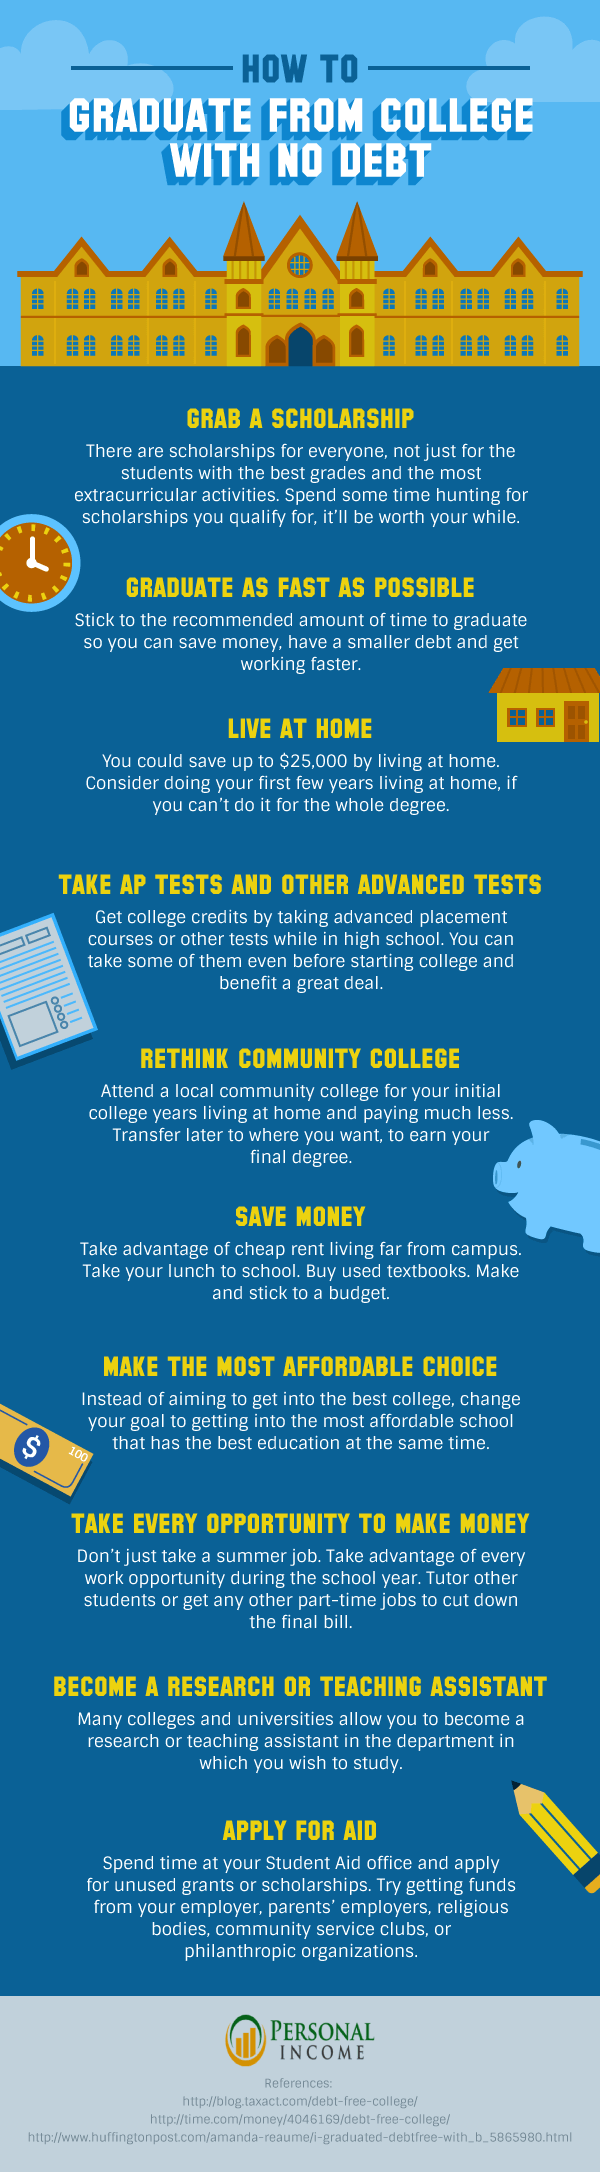 how to graduate from college no debt infographic how to graduate from college no debt